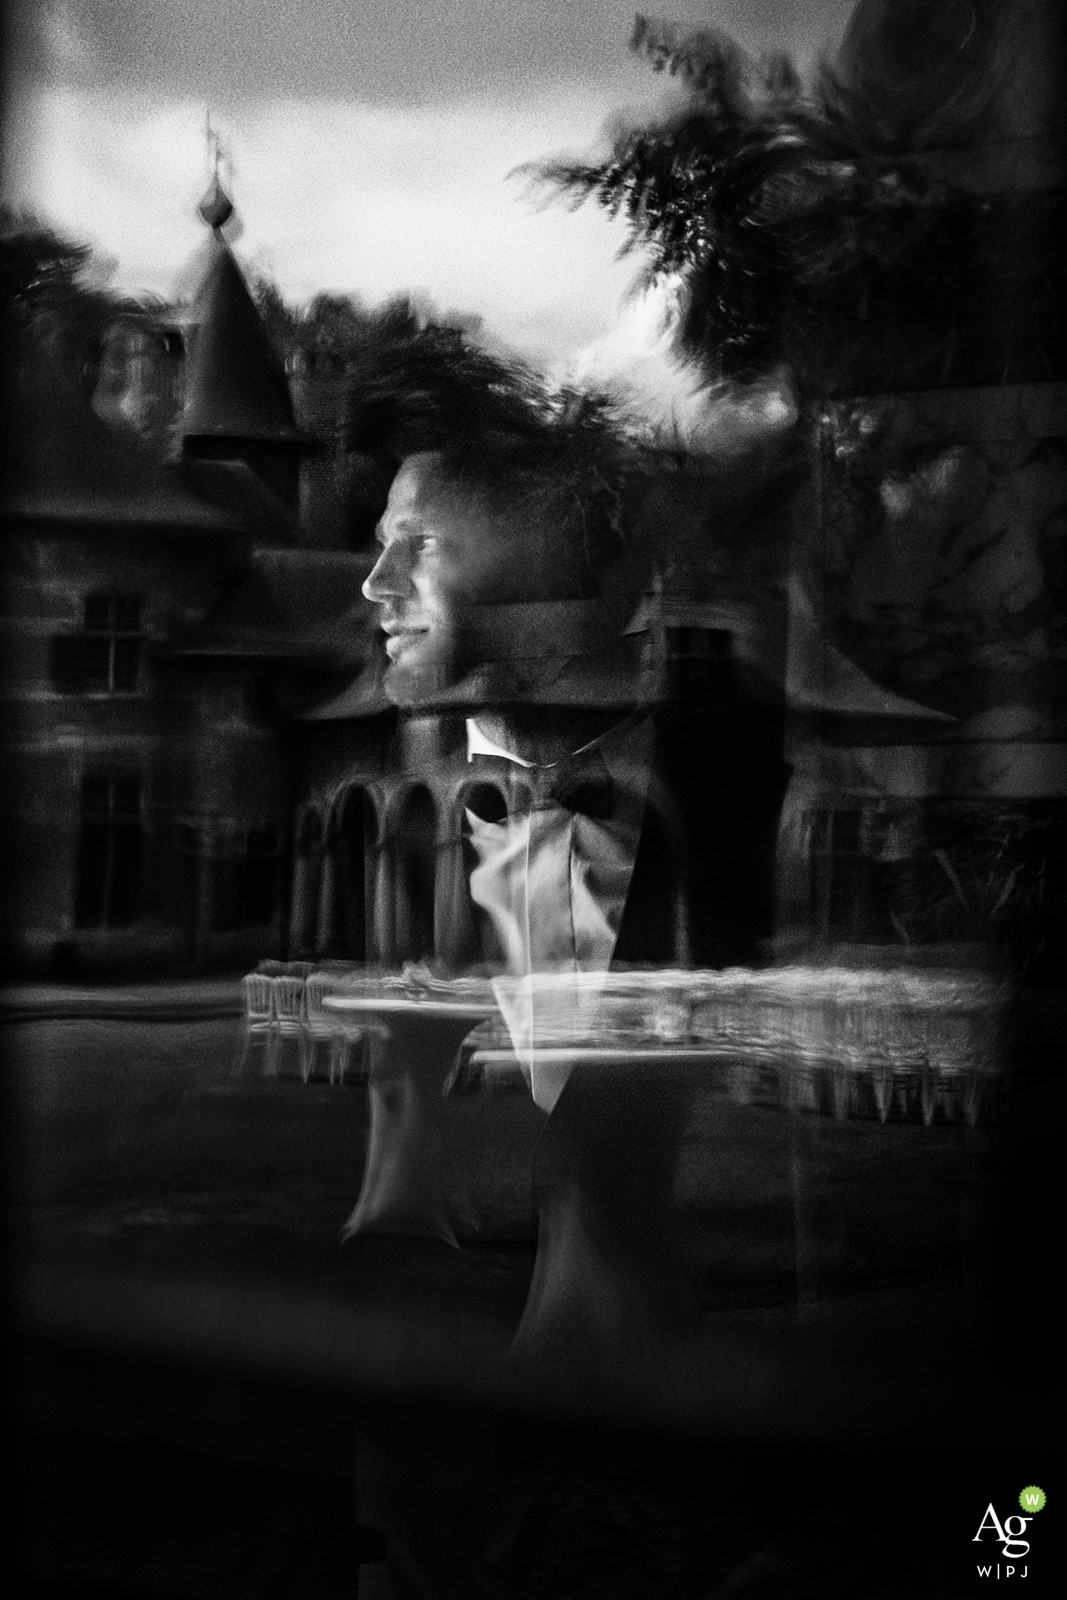 Czech Republic vertical portrait of a profiled groom with reflections in black-and-white